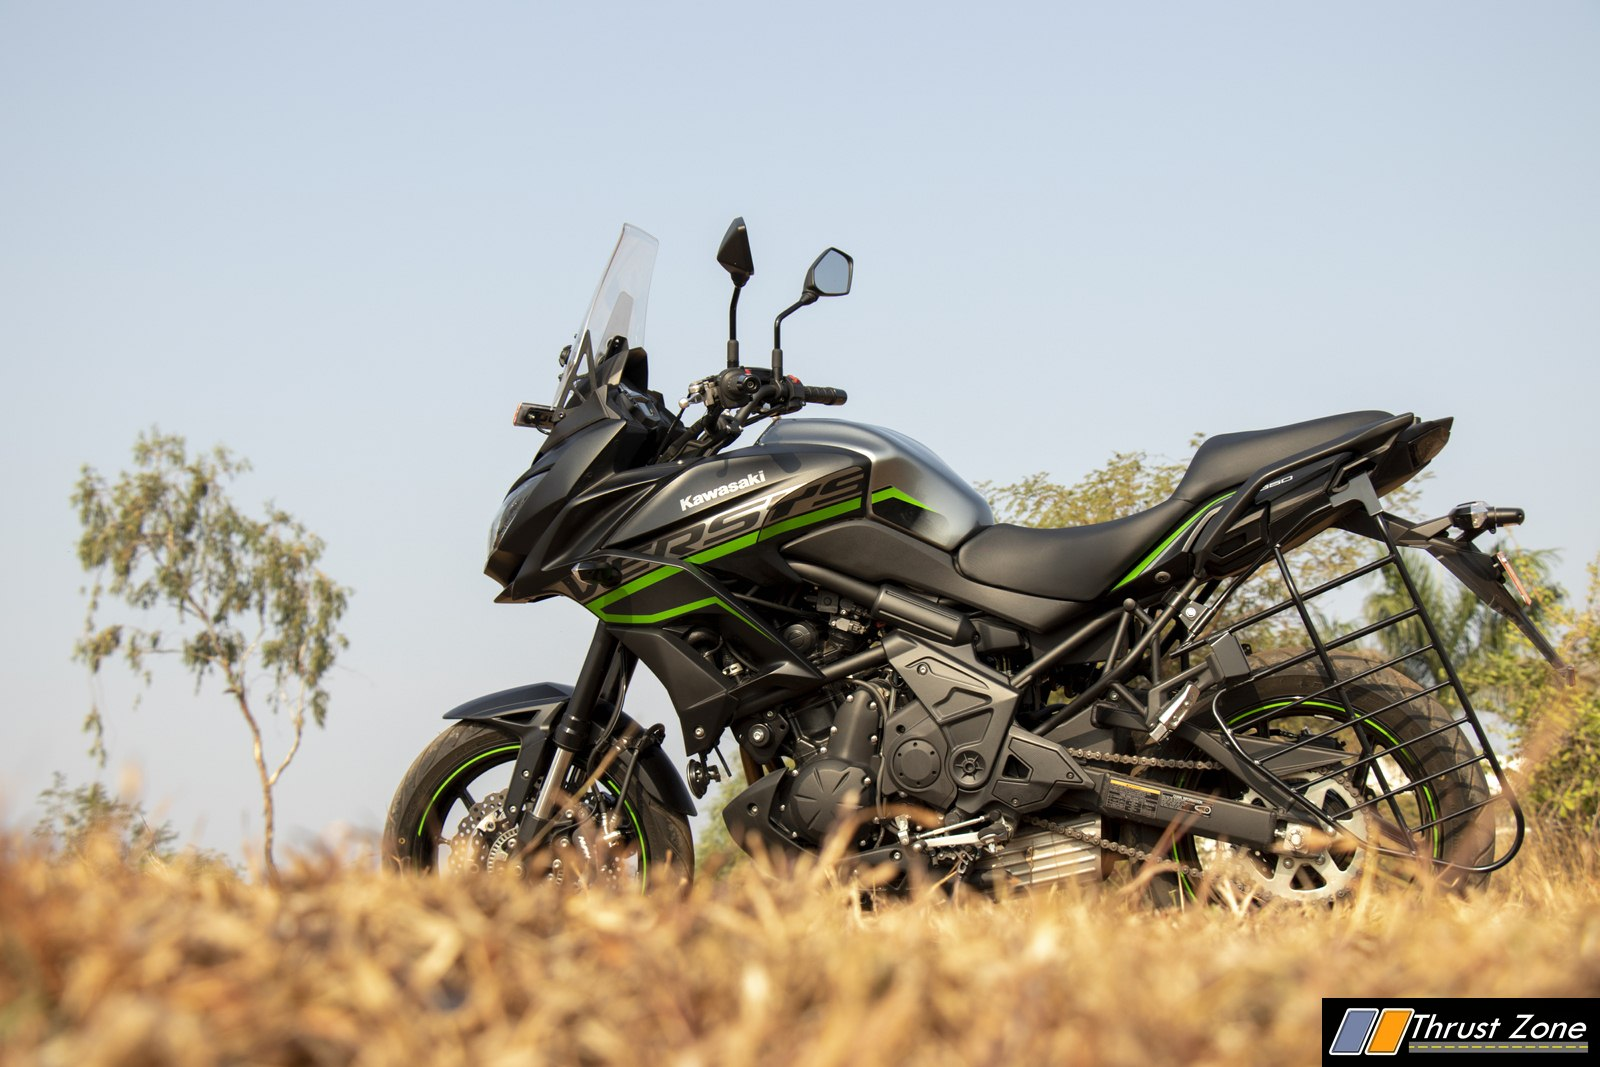 2019 Kawasaki Versys 650 India Review (6)